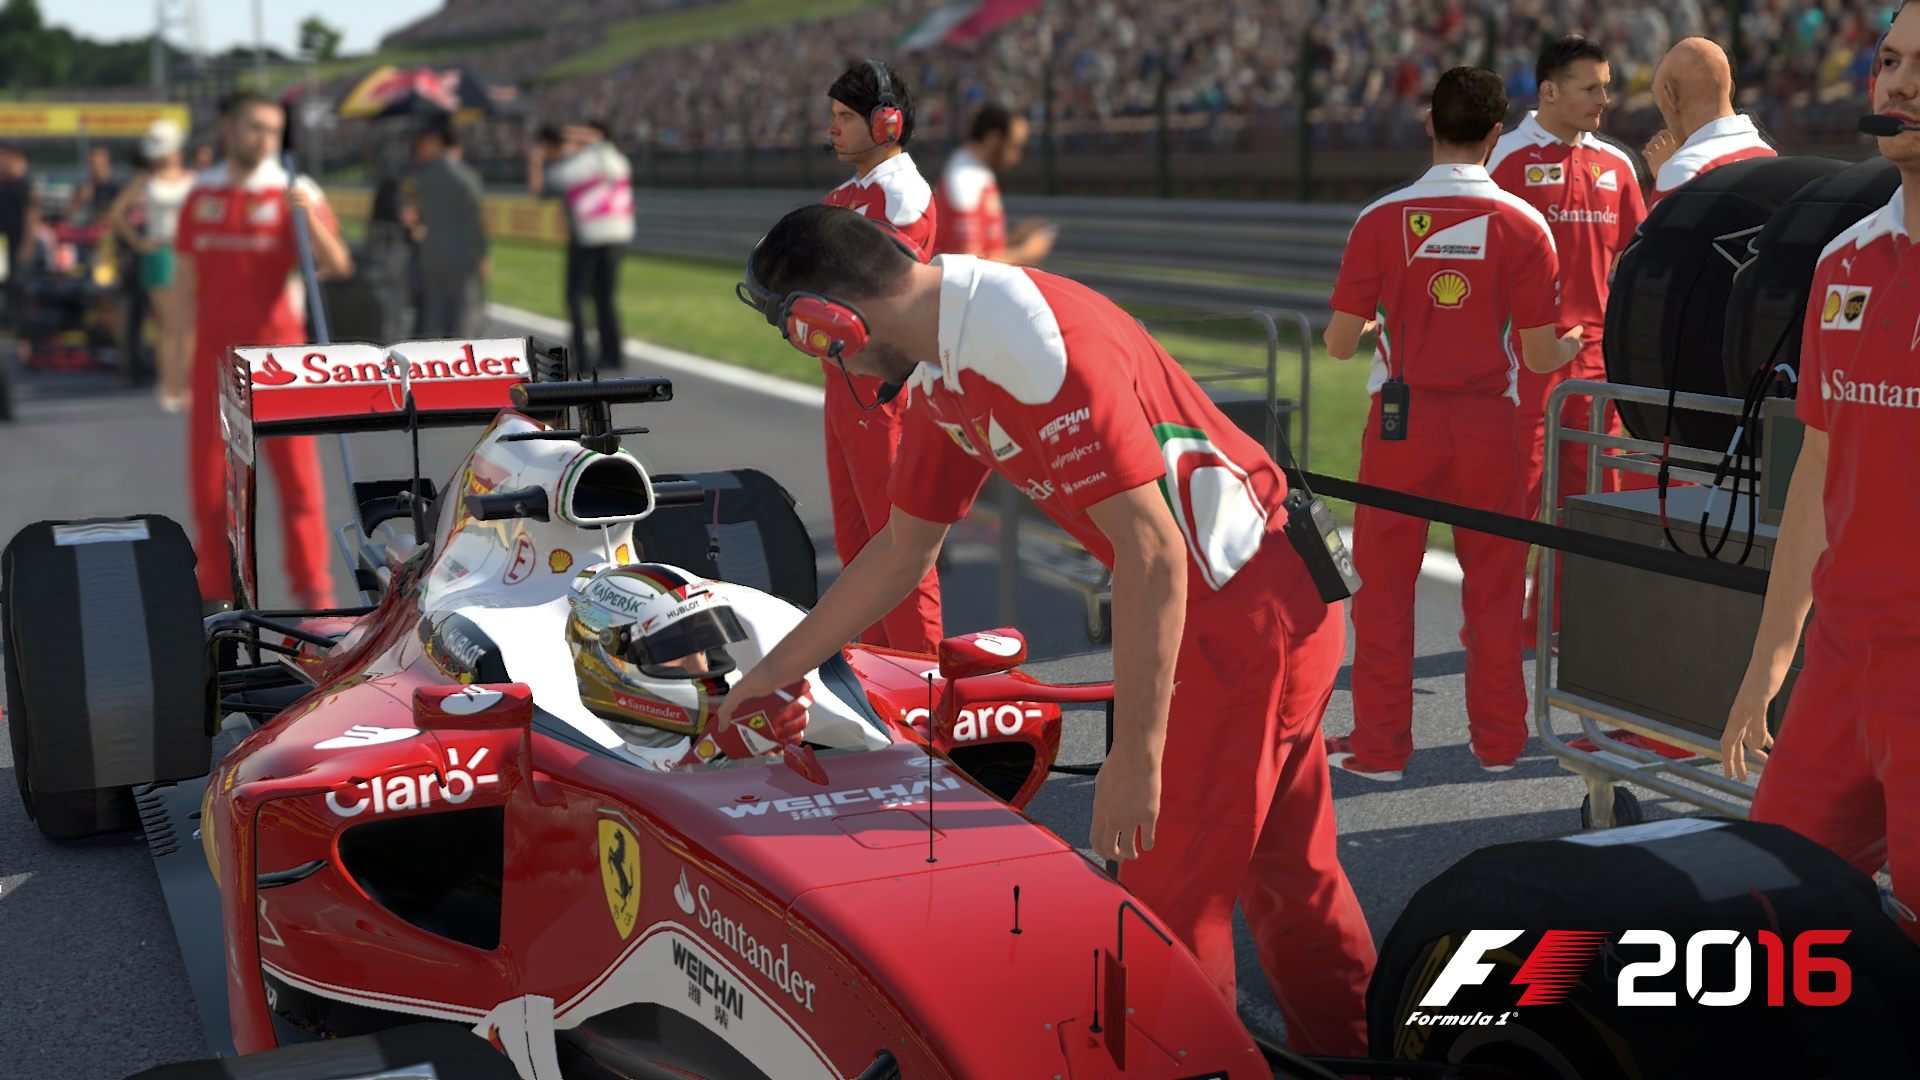 F1 2016 (Steam KEY / ROW / Region free / Global)